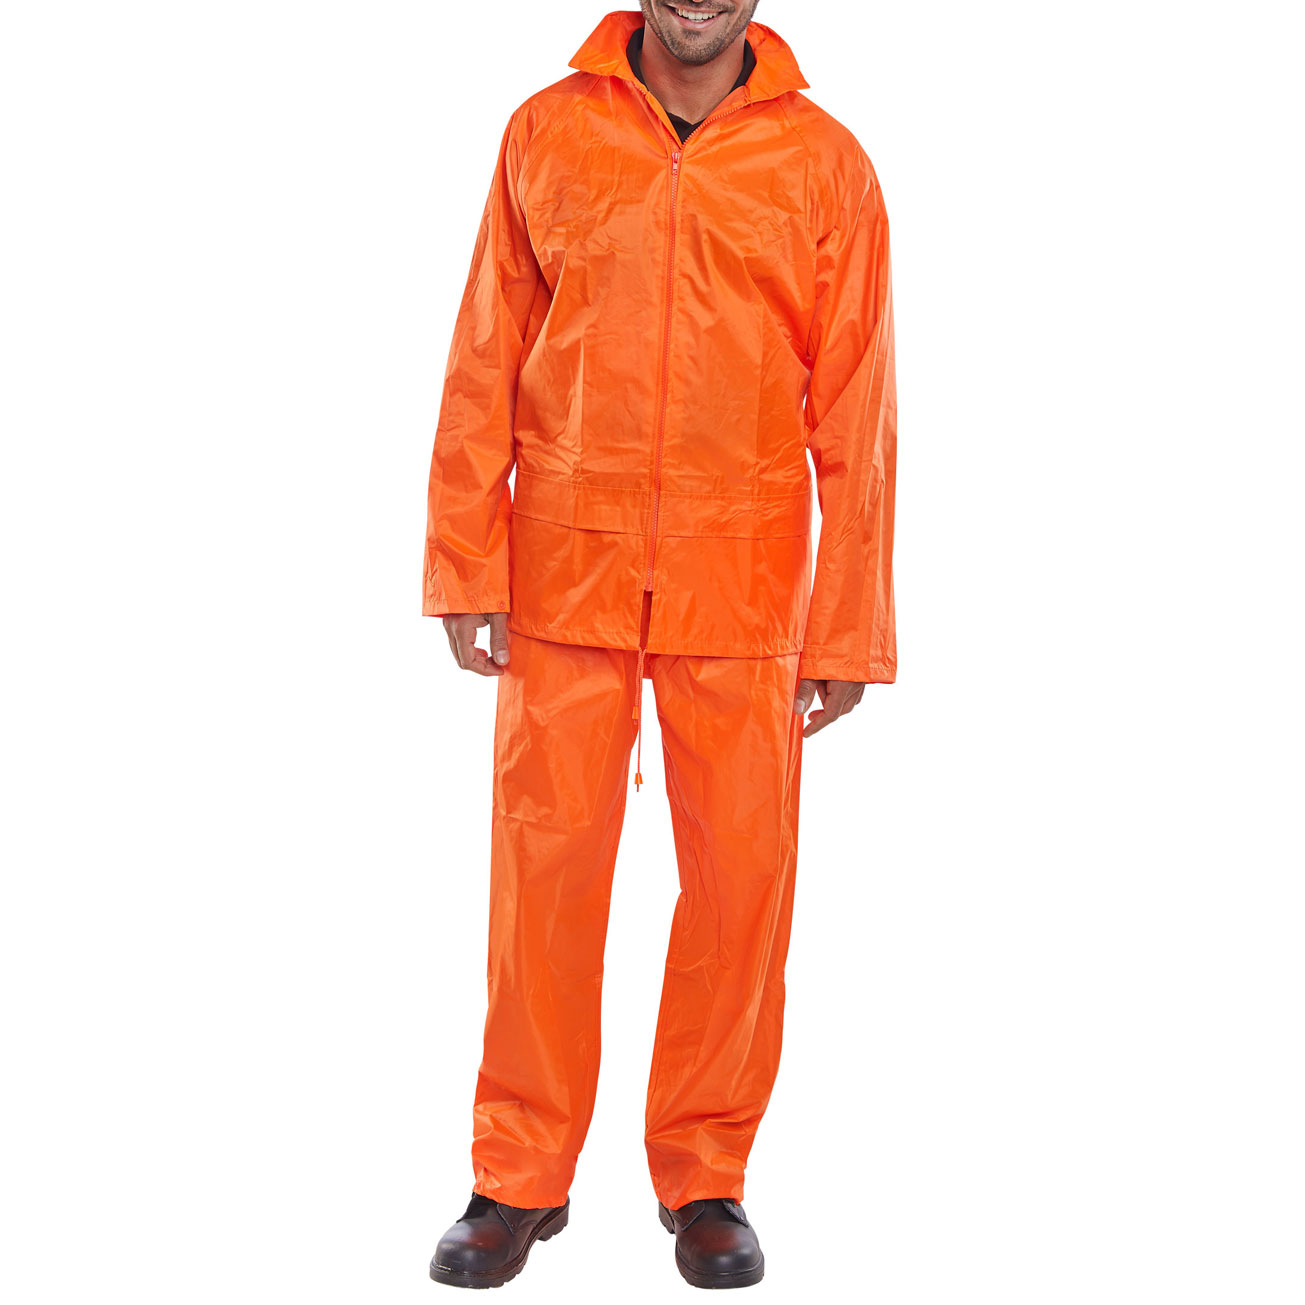 B-Dri Weatherproof Suit Nylon Jacket and Trouser M Orange Ref NBDSORM *Up to 3 Day Leadtime*